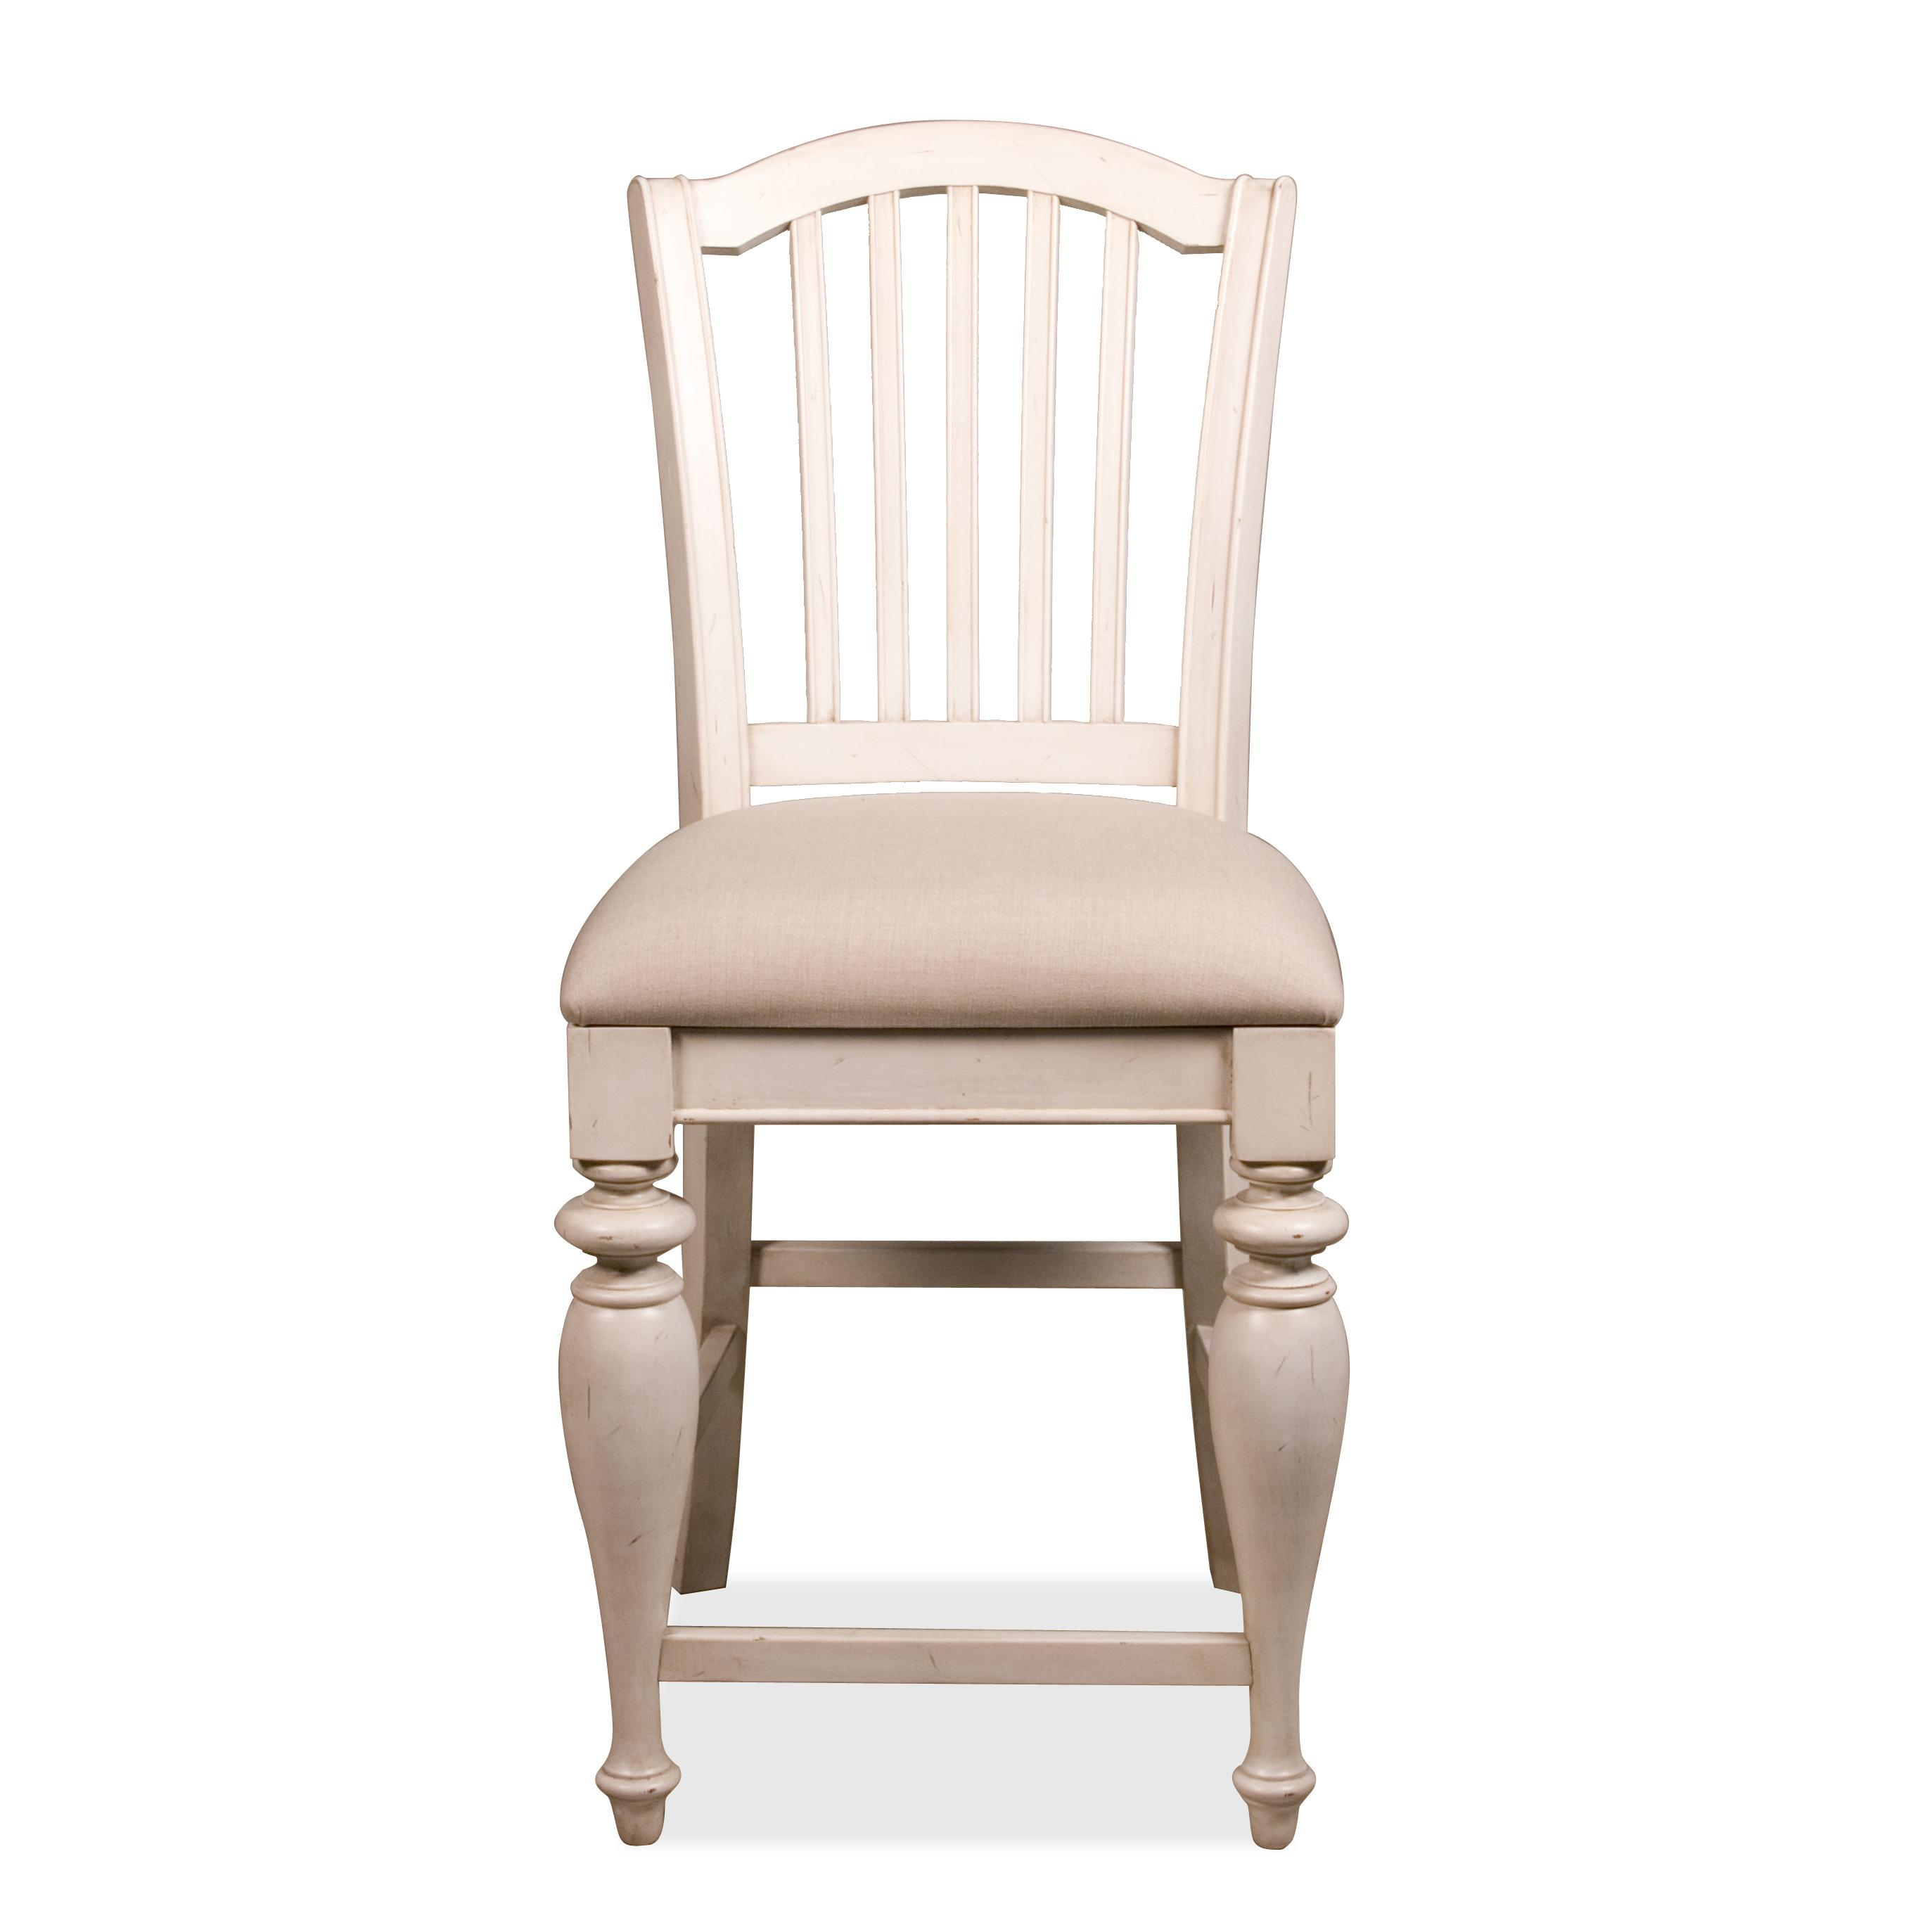 upholstered counter height chairs increase dining chair riverside furniture mix n match stool with